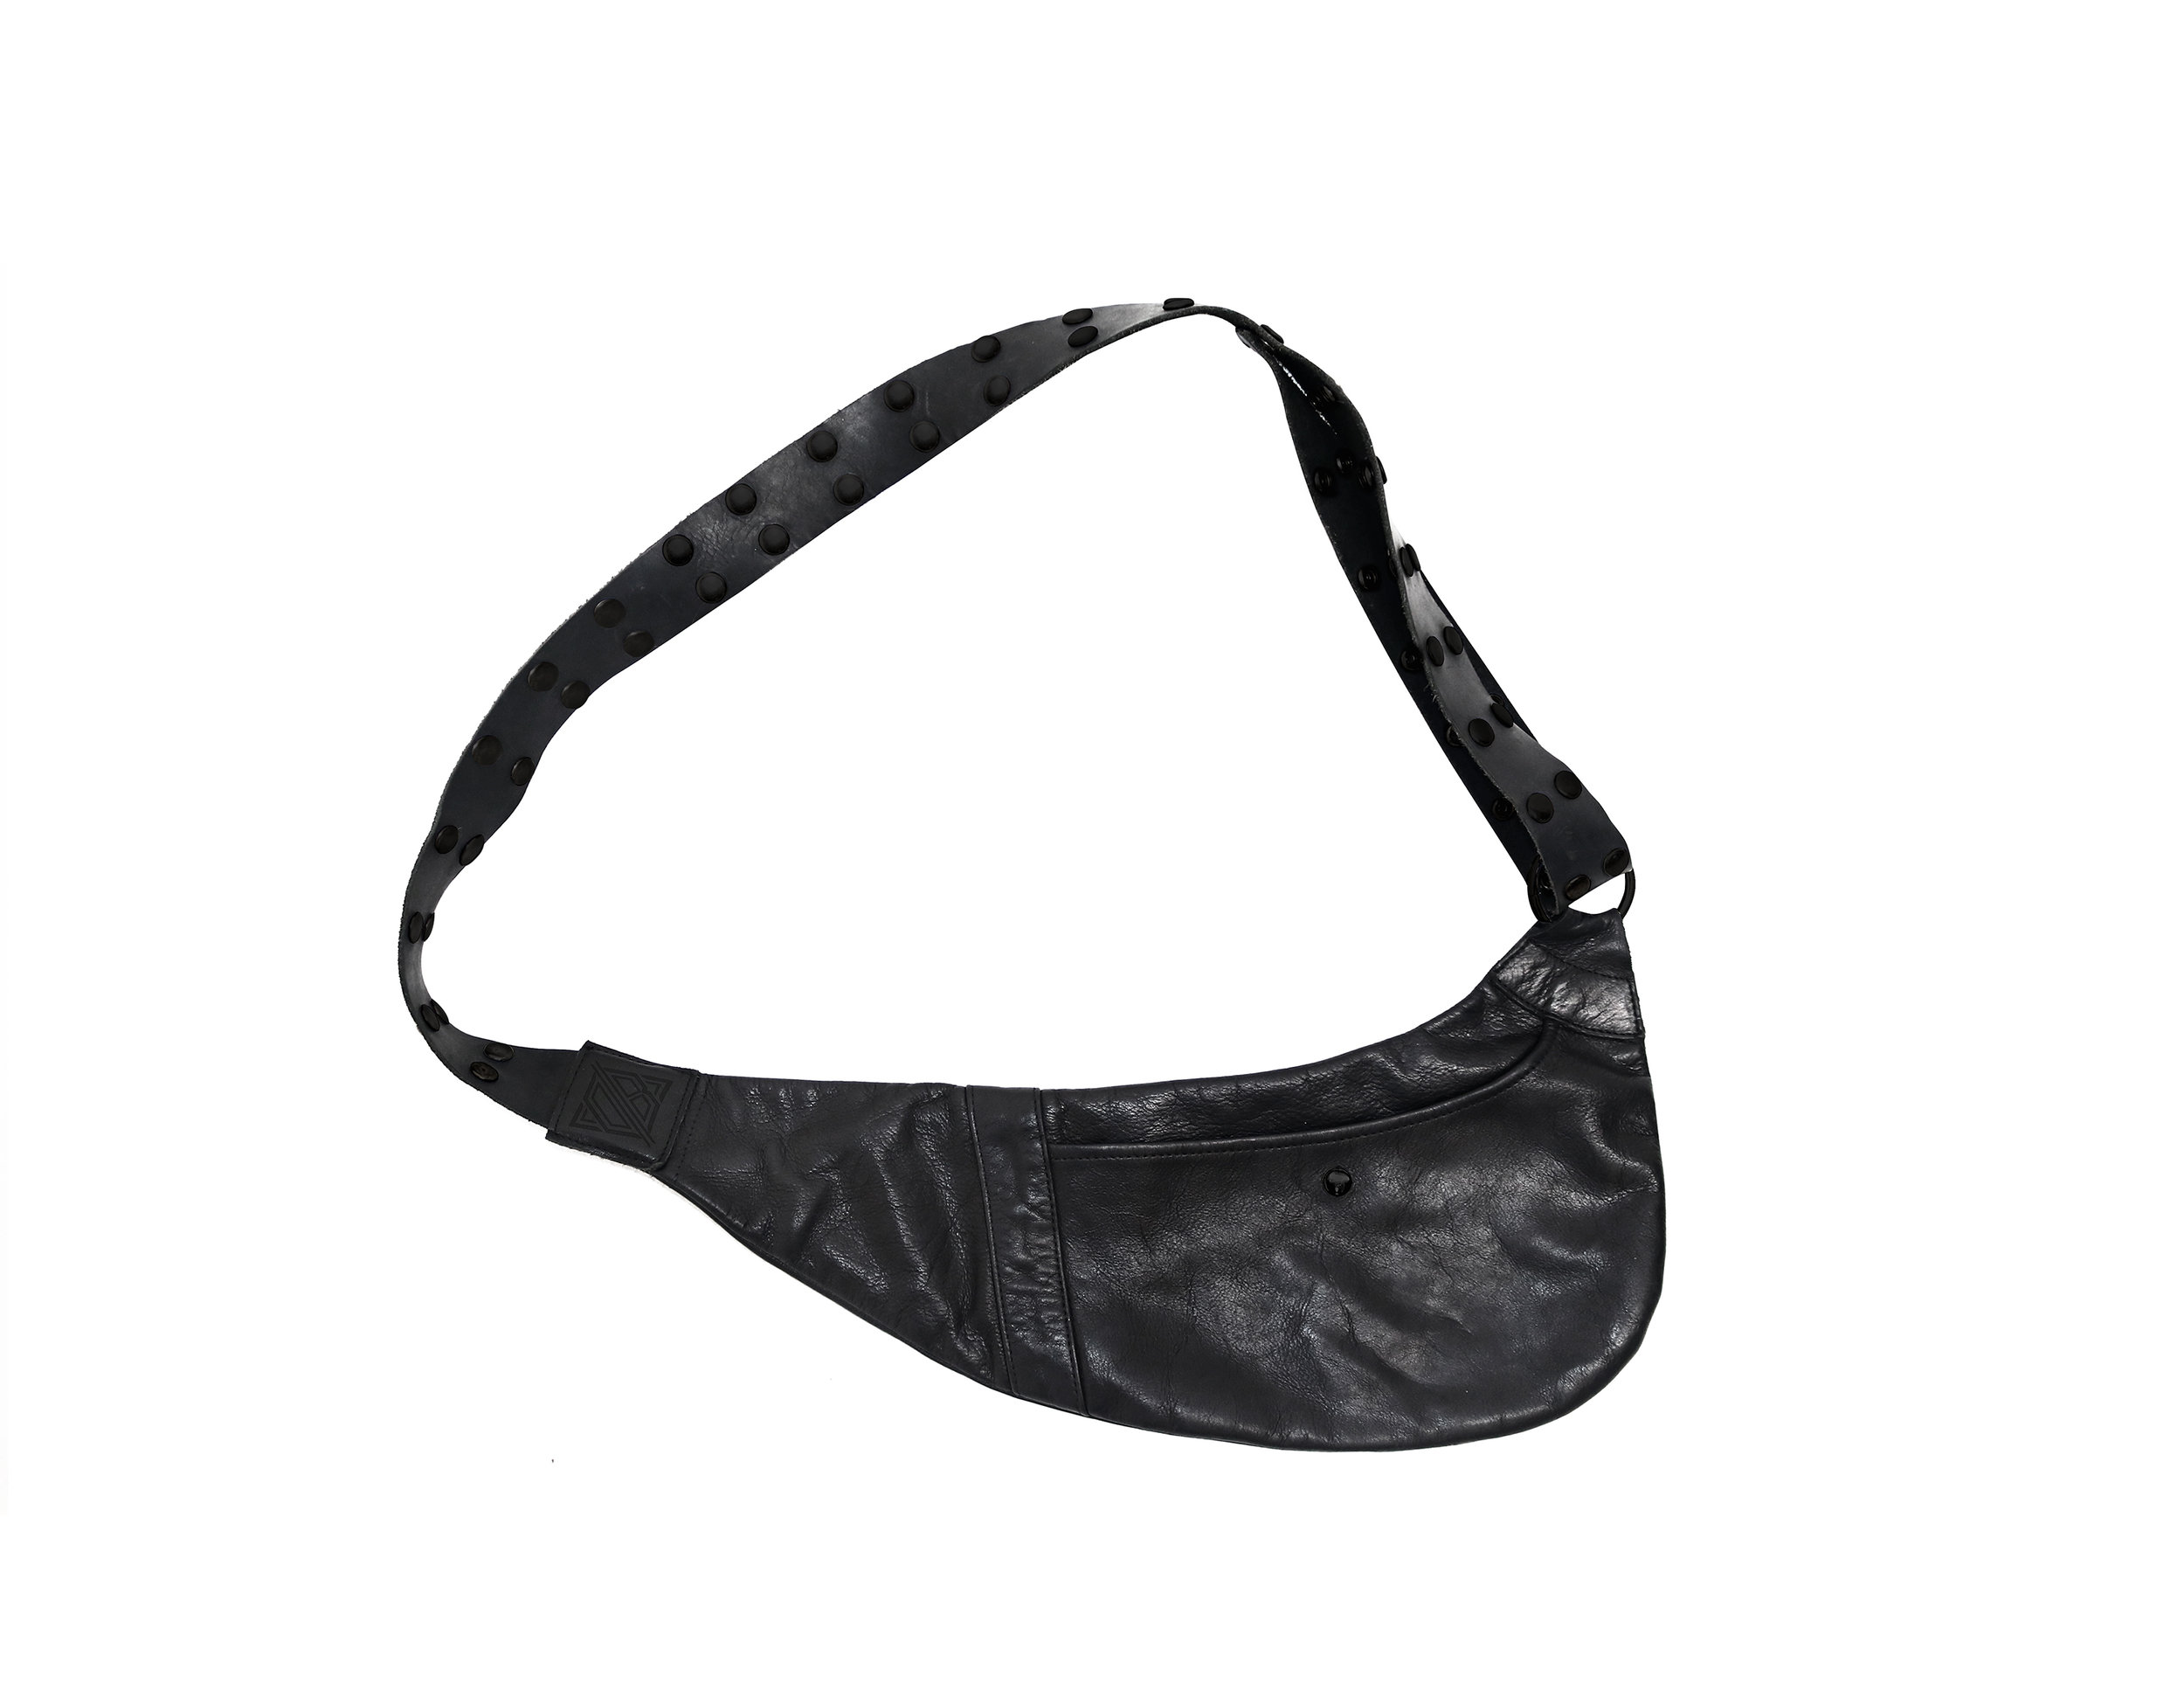 Dirty sling bag$275 - all black with black hardware